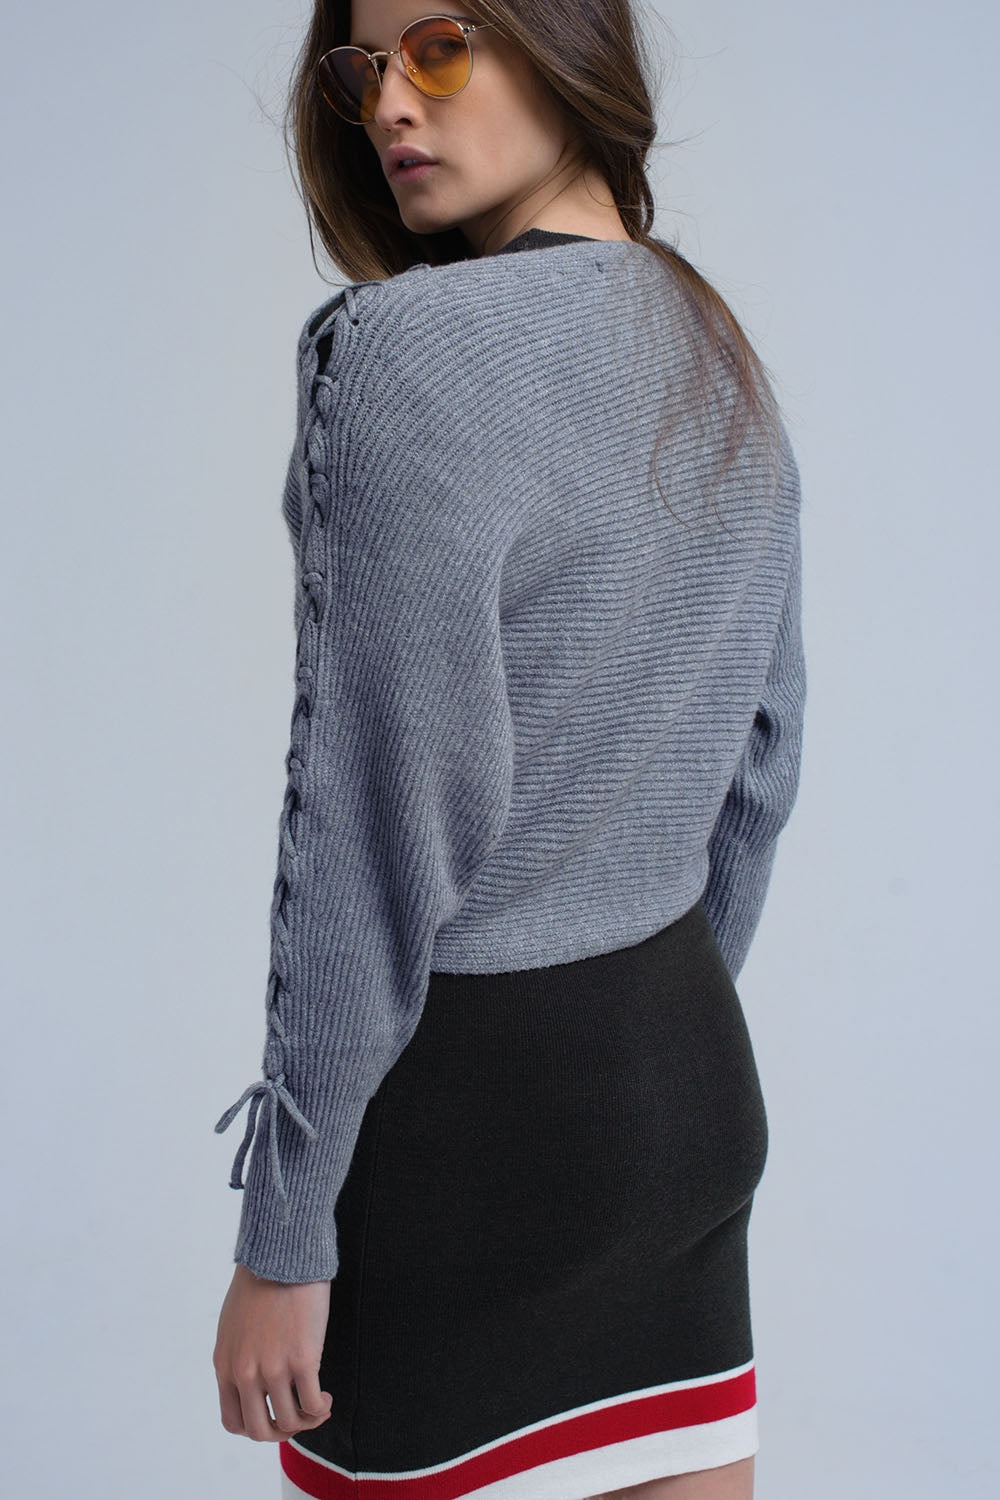 Gray Crop Sweater With Tie Ribbons-Women - Apparel - Sweaters - Pull Over-Product Details Crop sweater in gray. It has a round neck, a round hem and long sleeves. There are ribbons on the sleeves that start on the shoulder line and finish tied on the wrists. It is in ribbed woven fabric.-Keyomi-Sook